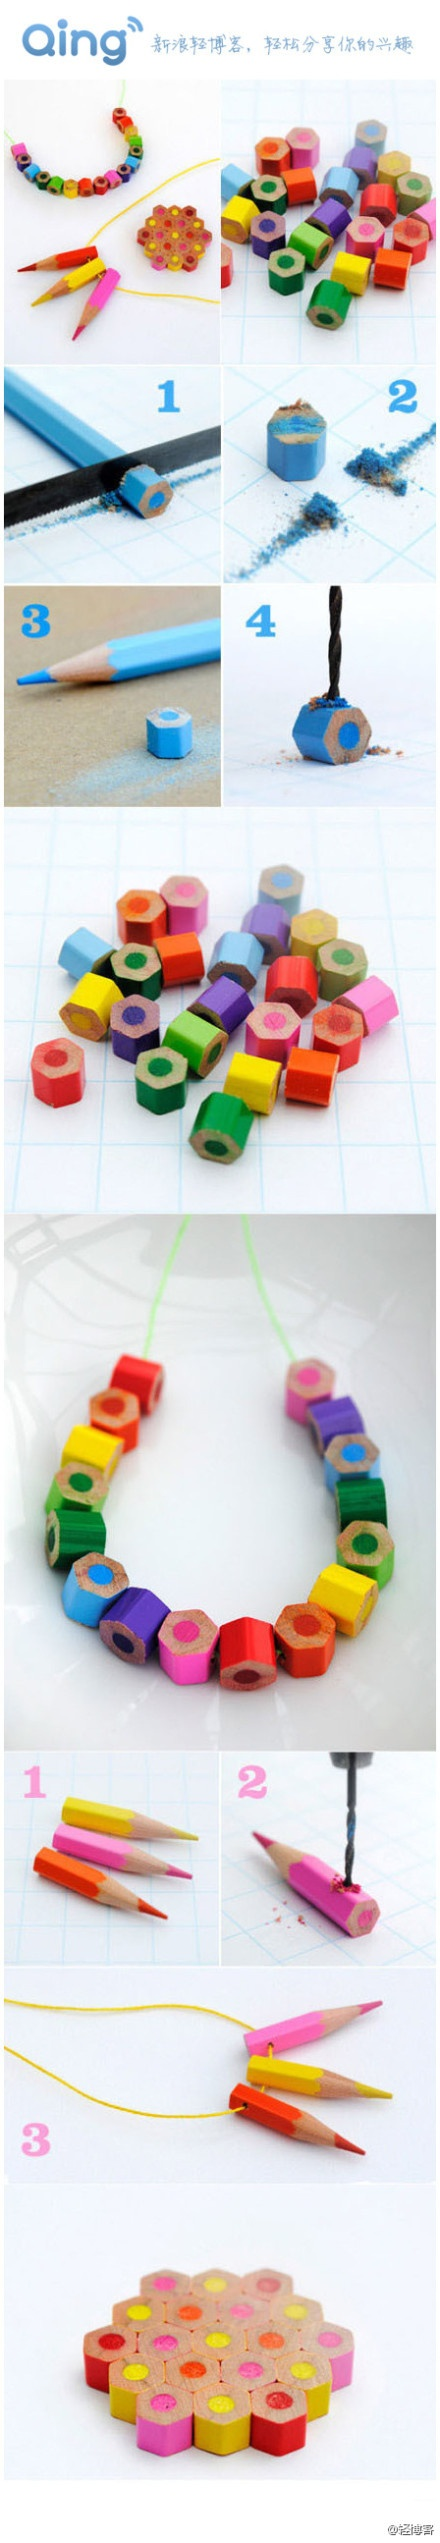 Accessories made from color pencils?